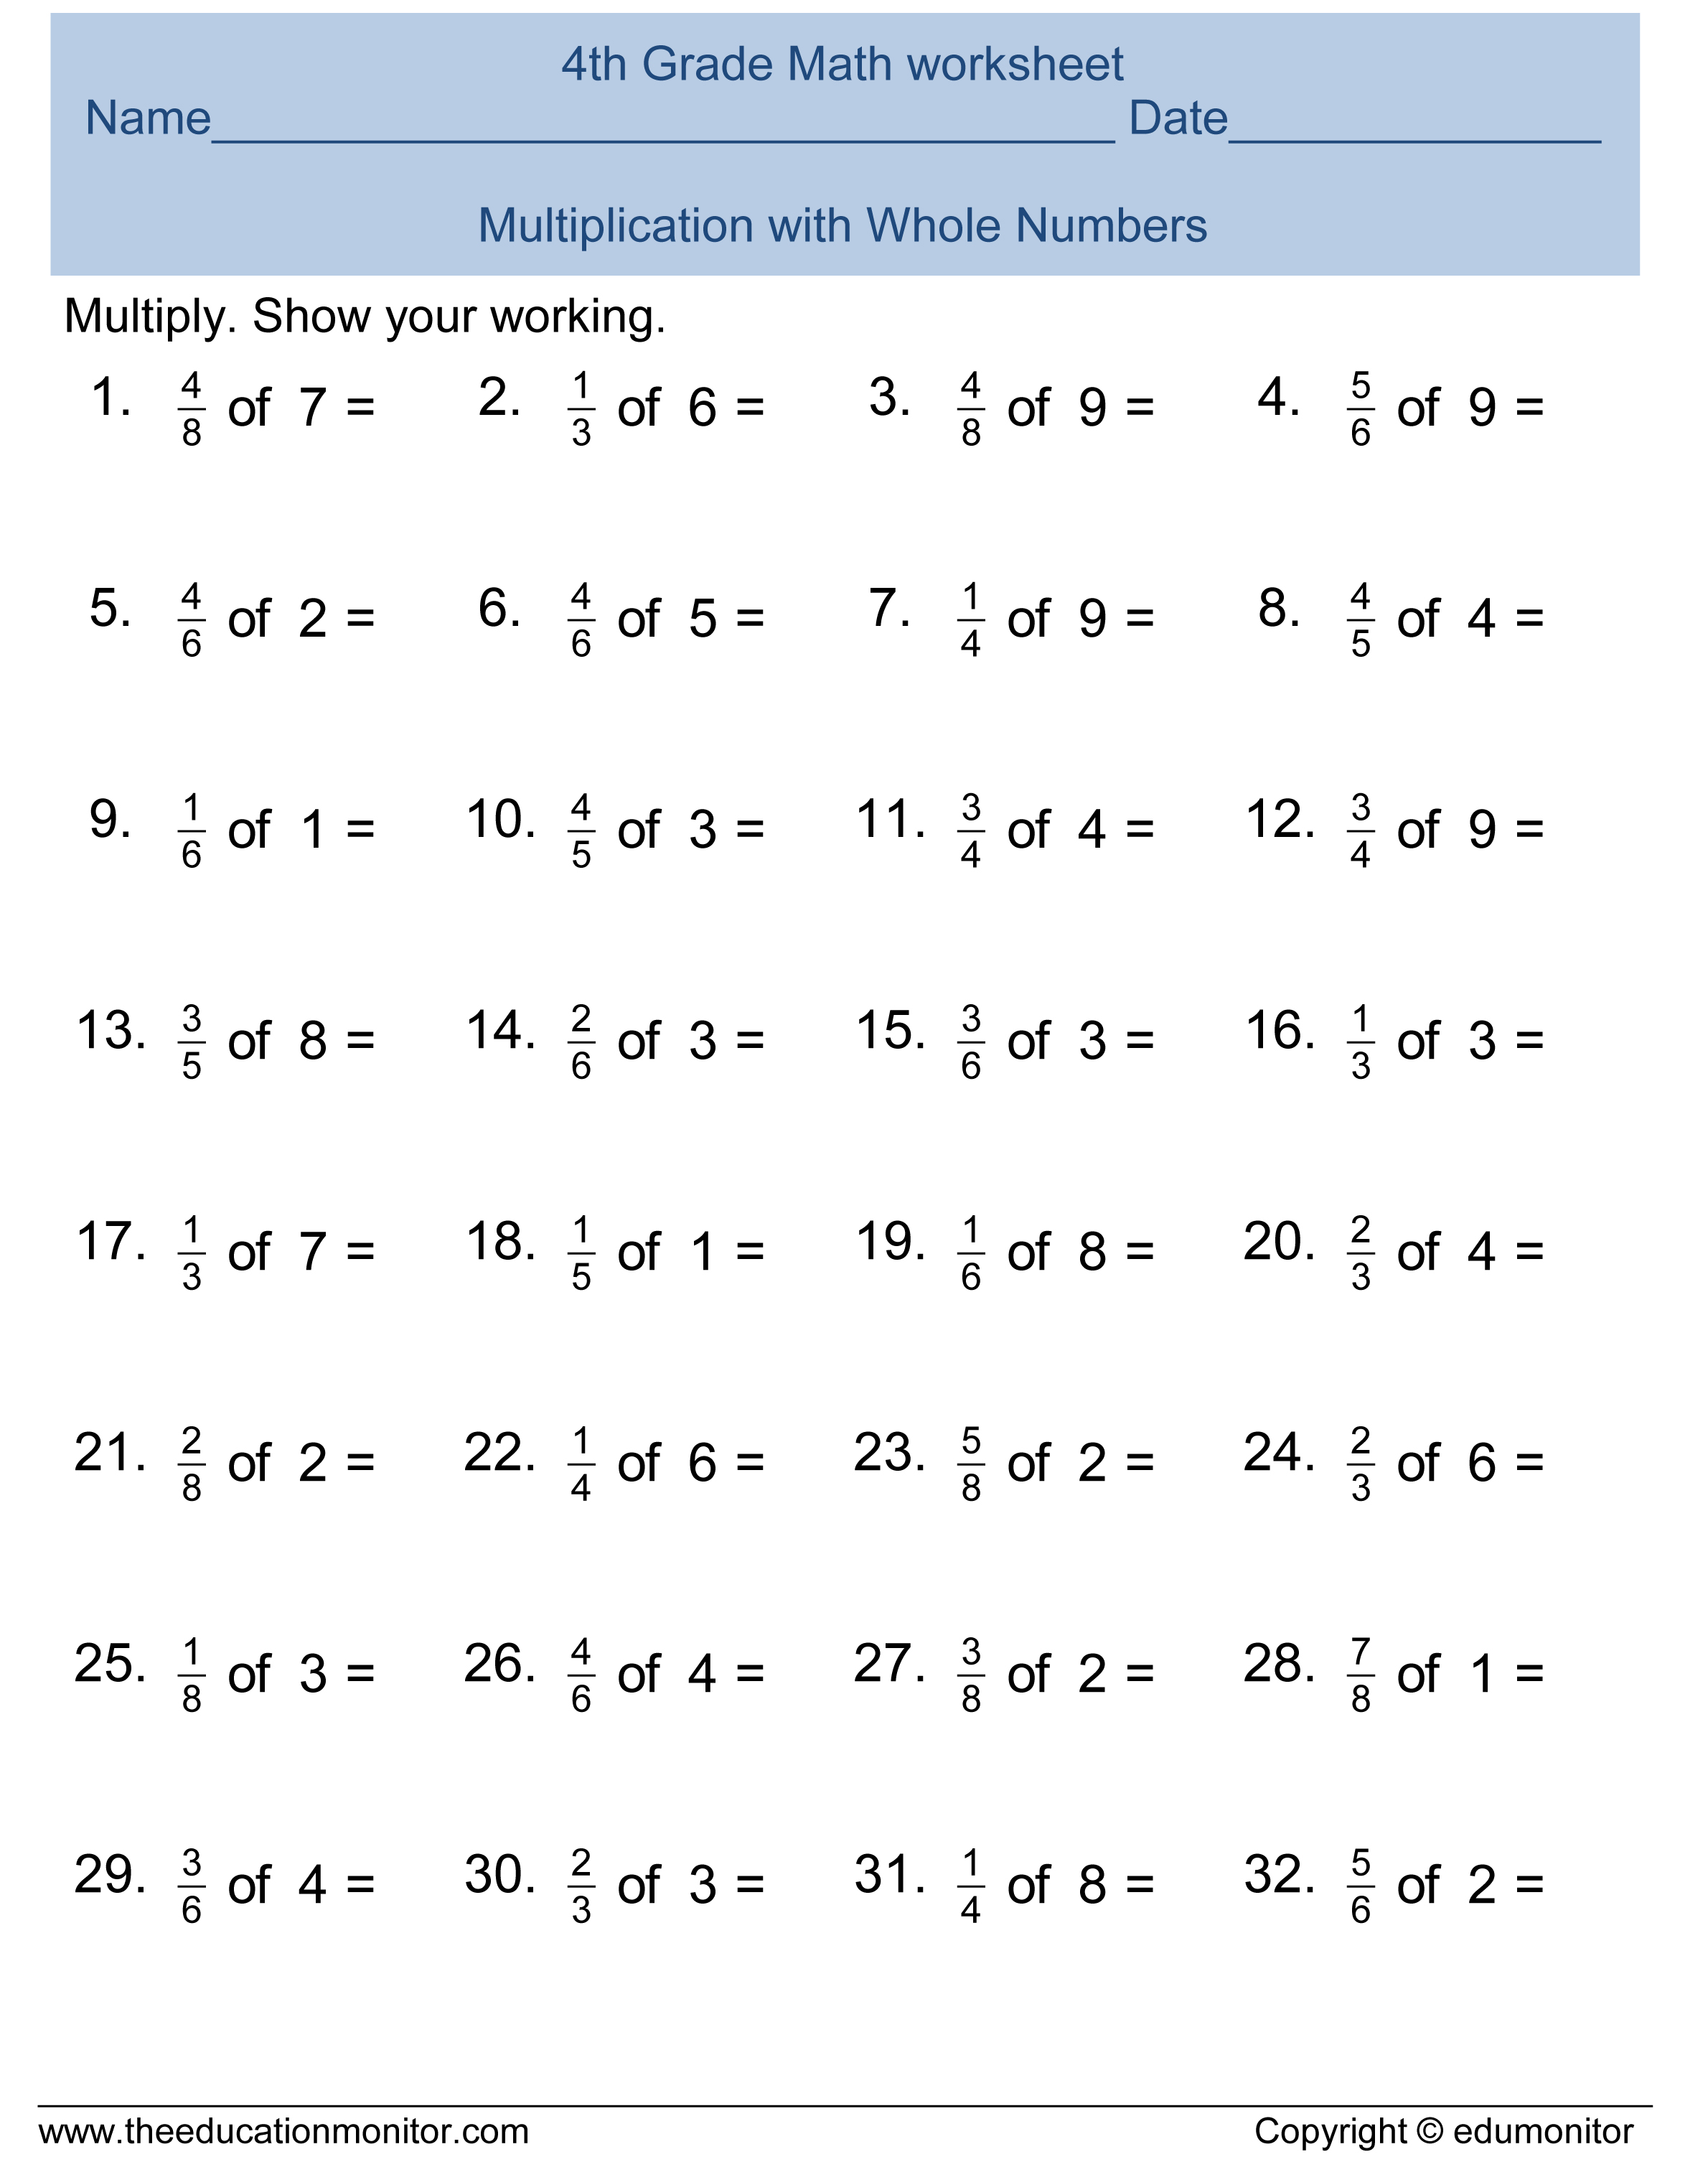 math worksheet : free printable worksheets for 4th grade : Free Multiplication Worksheets 4th Grade